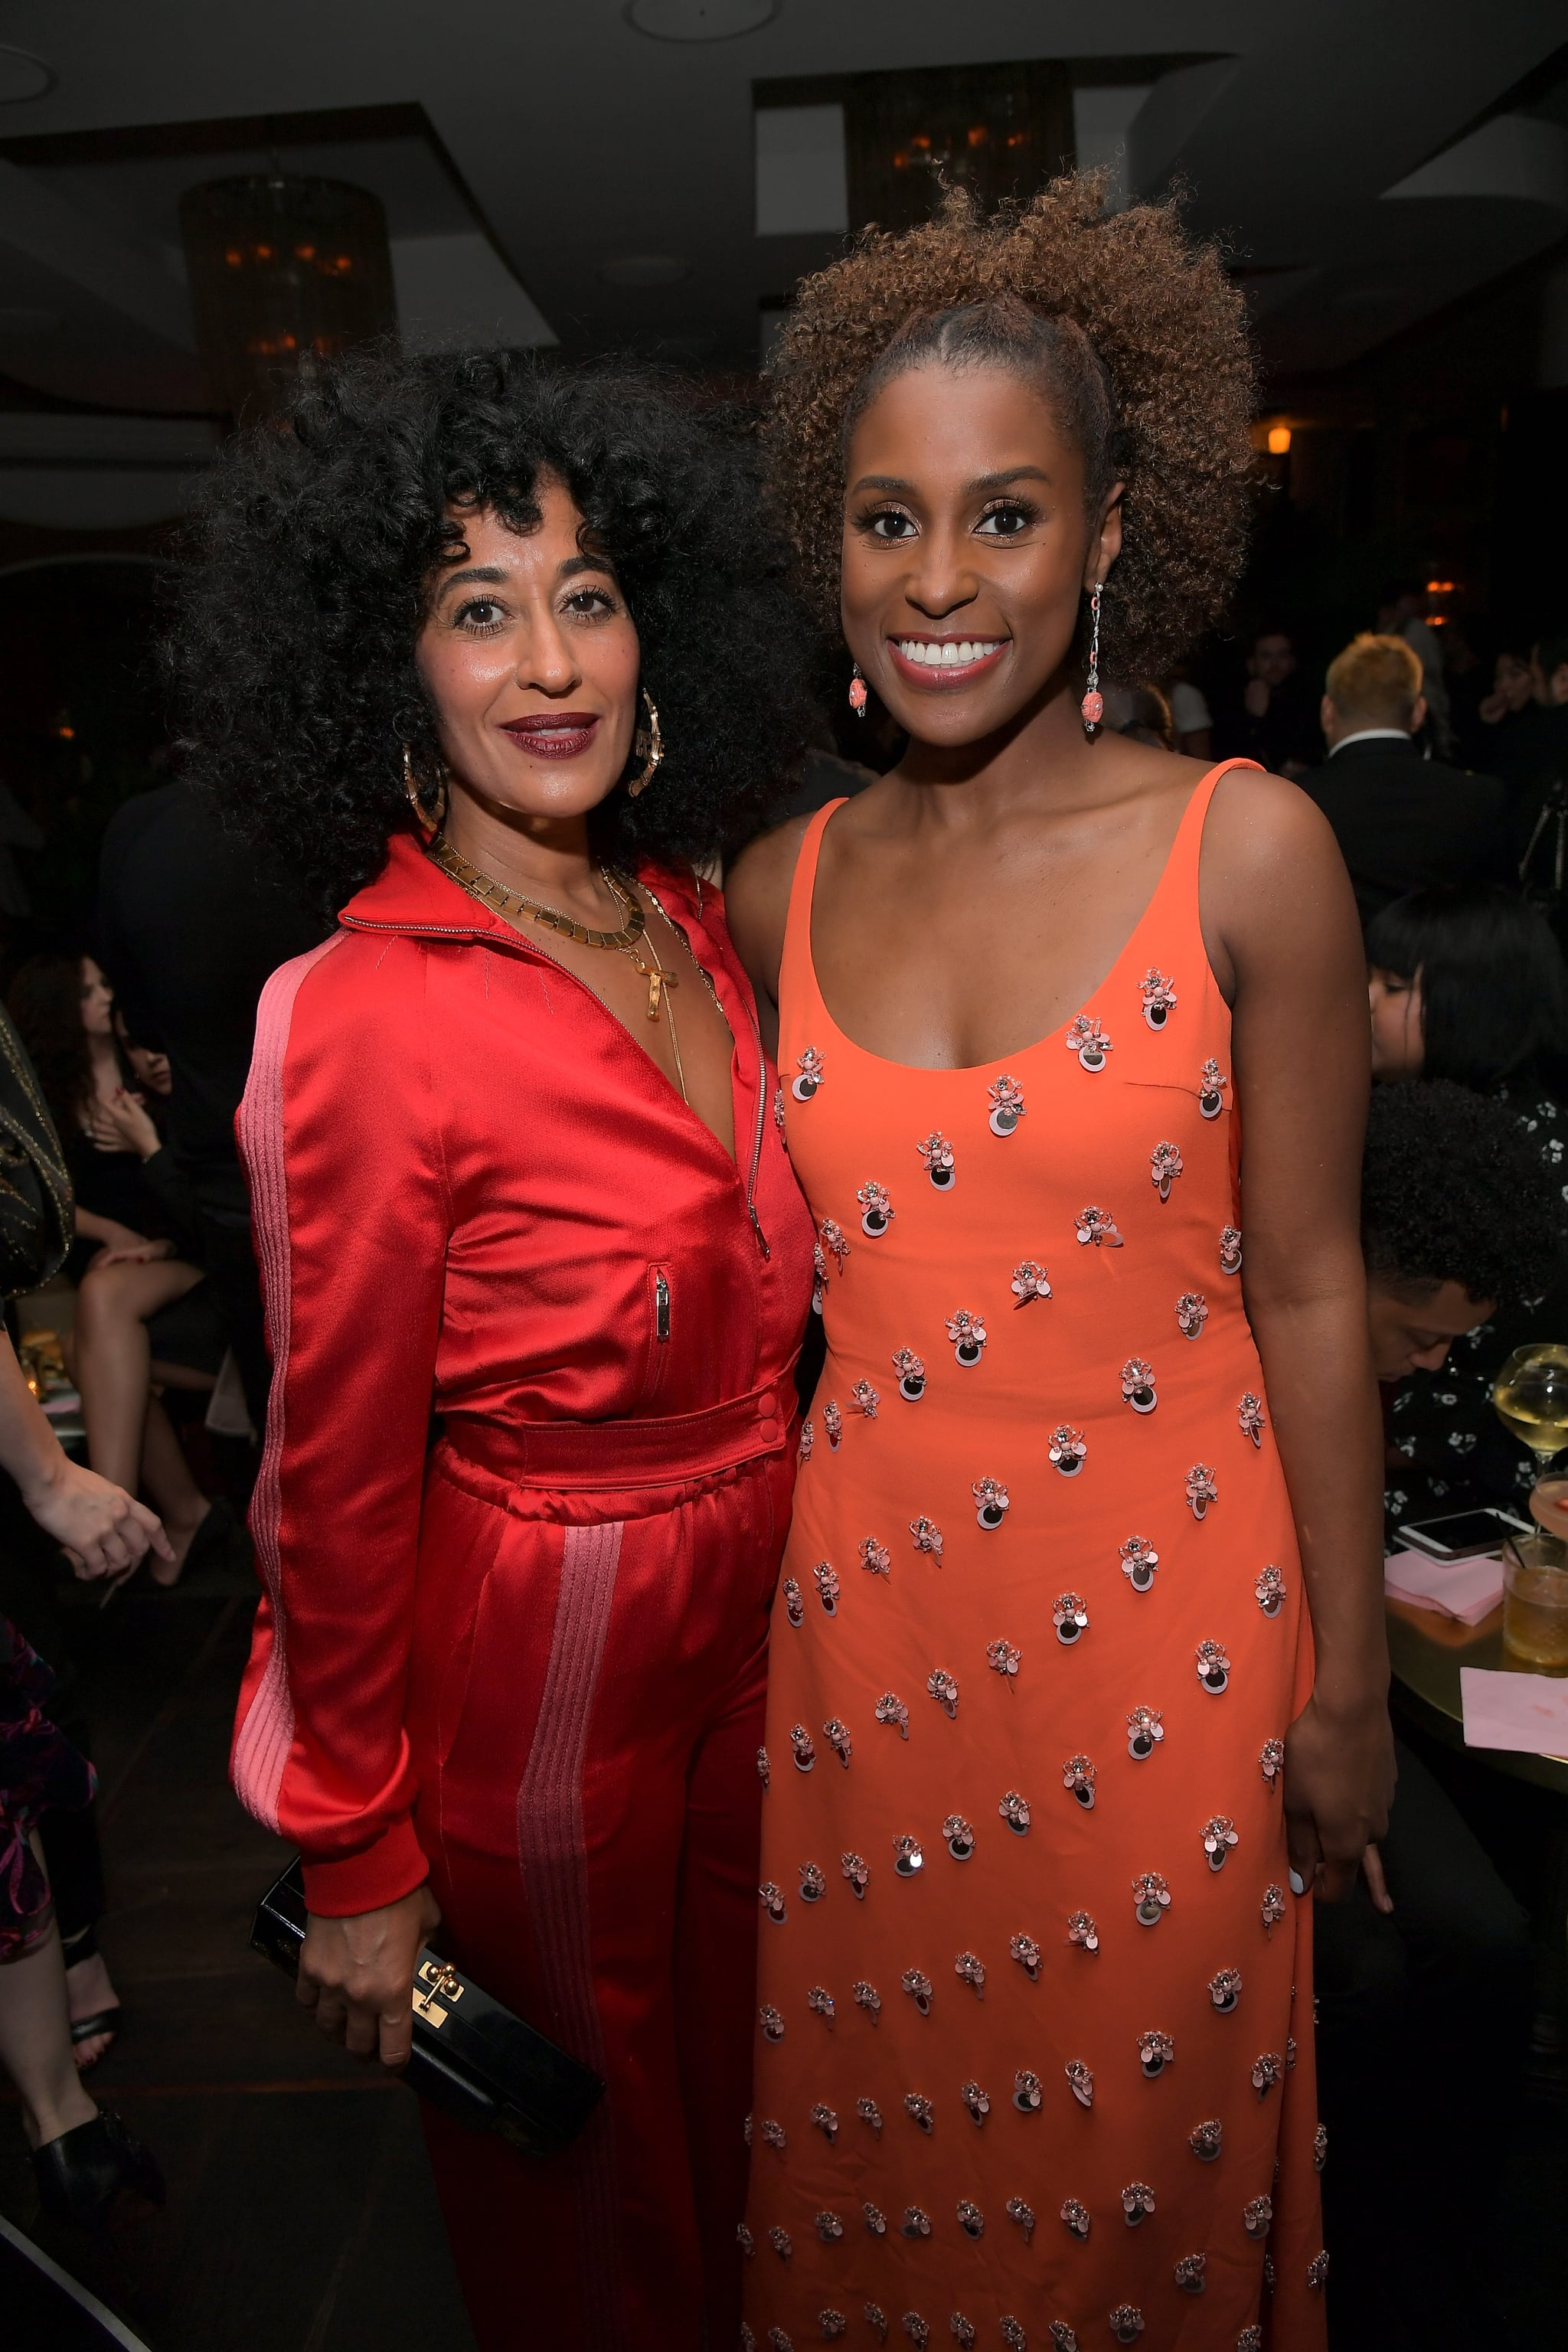 WEST HOLLYWOOD, CA - JANUARY 11:  Tracee Ellis Ross (L) and Issa Rae attend the Marie Claire's Image Makers Awards 2018 on January 11, 2018 in West Hollywood, California.  (Photo by Charley Gallay/Getty Images for Marie Claire)